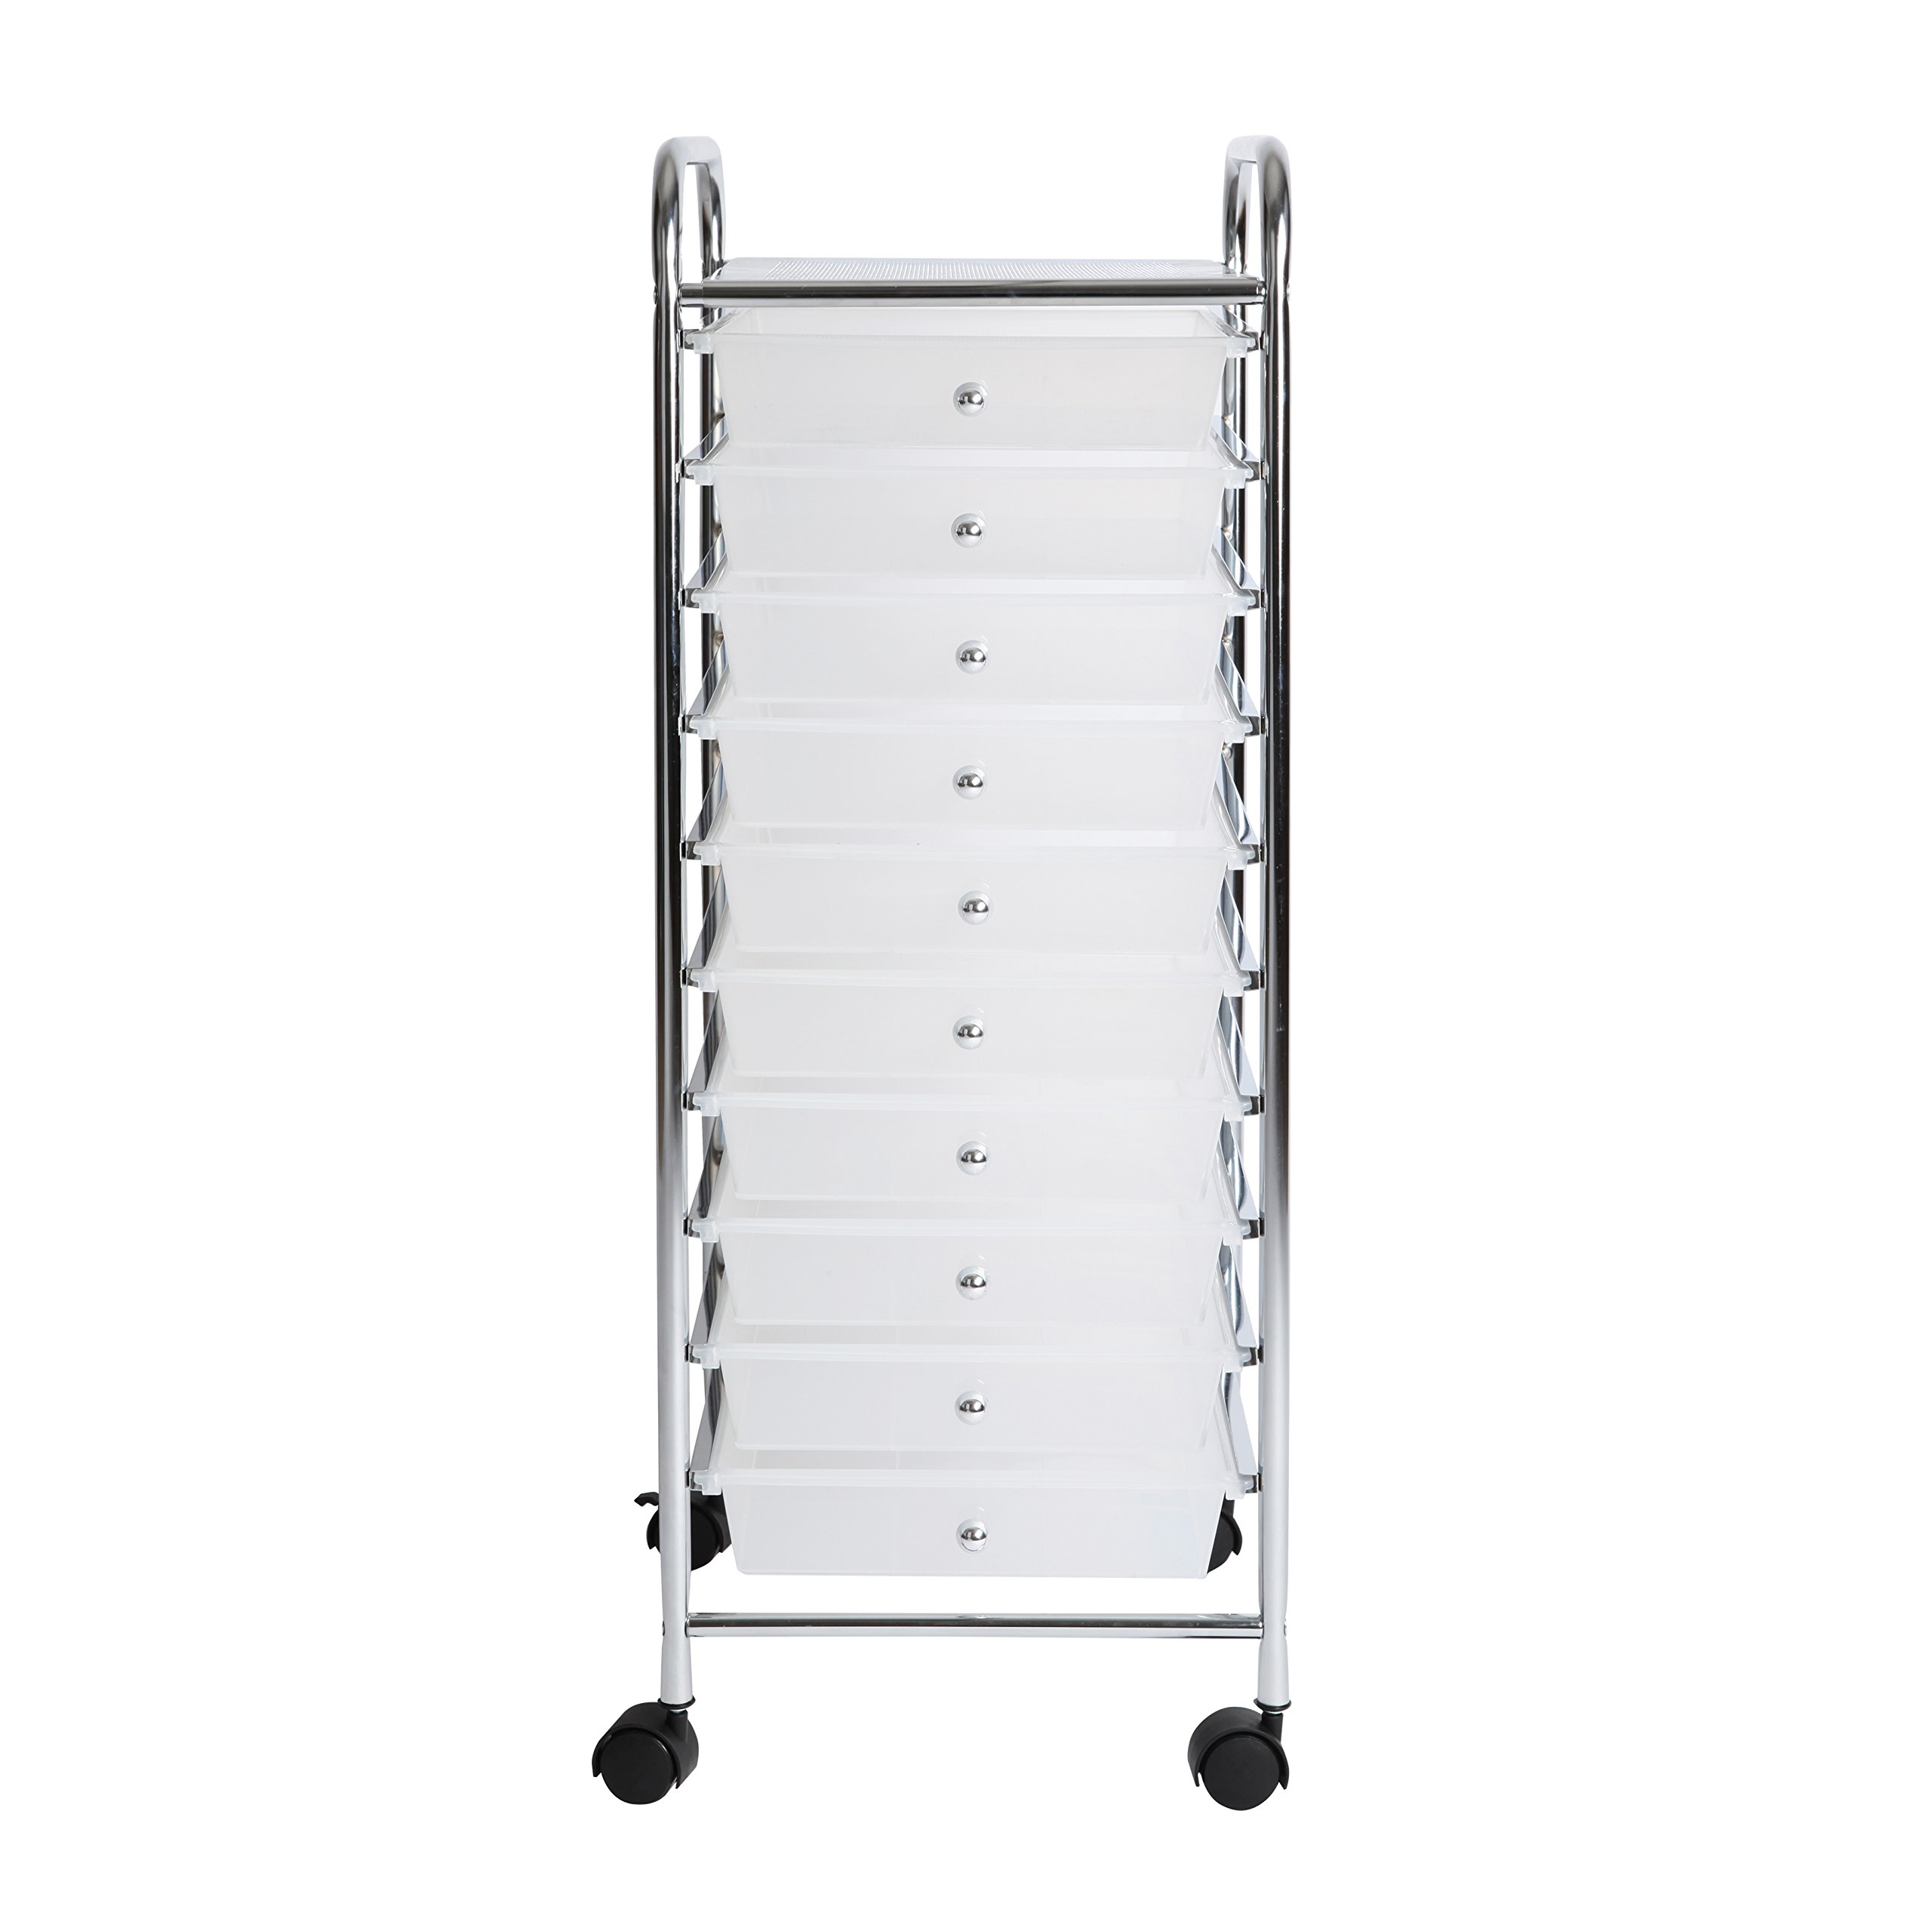 Finnhomy 10 Drawer Rolling Cart, Storage Rolling Carts with Semi-Transparent White Drawers, Organizer Cart for School, Office, Home, Beauty Salon,Utility Cart with Wheels